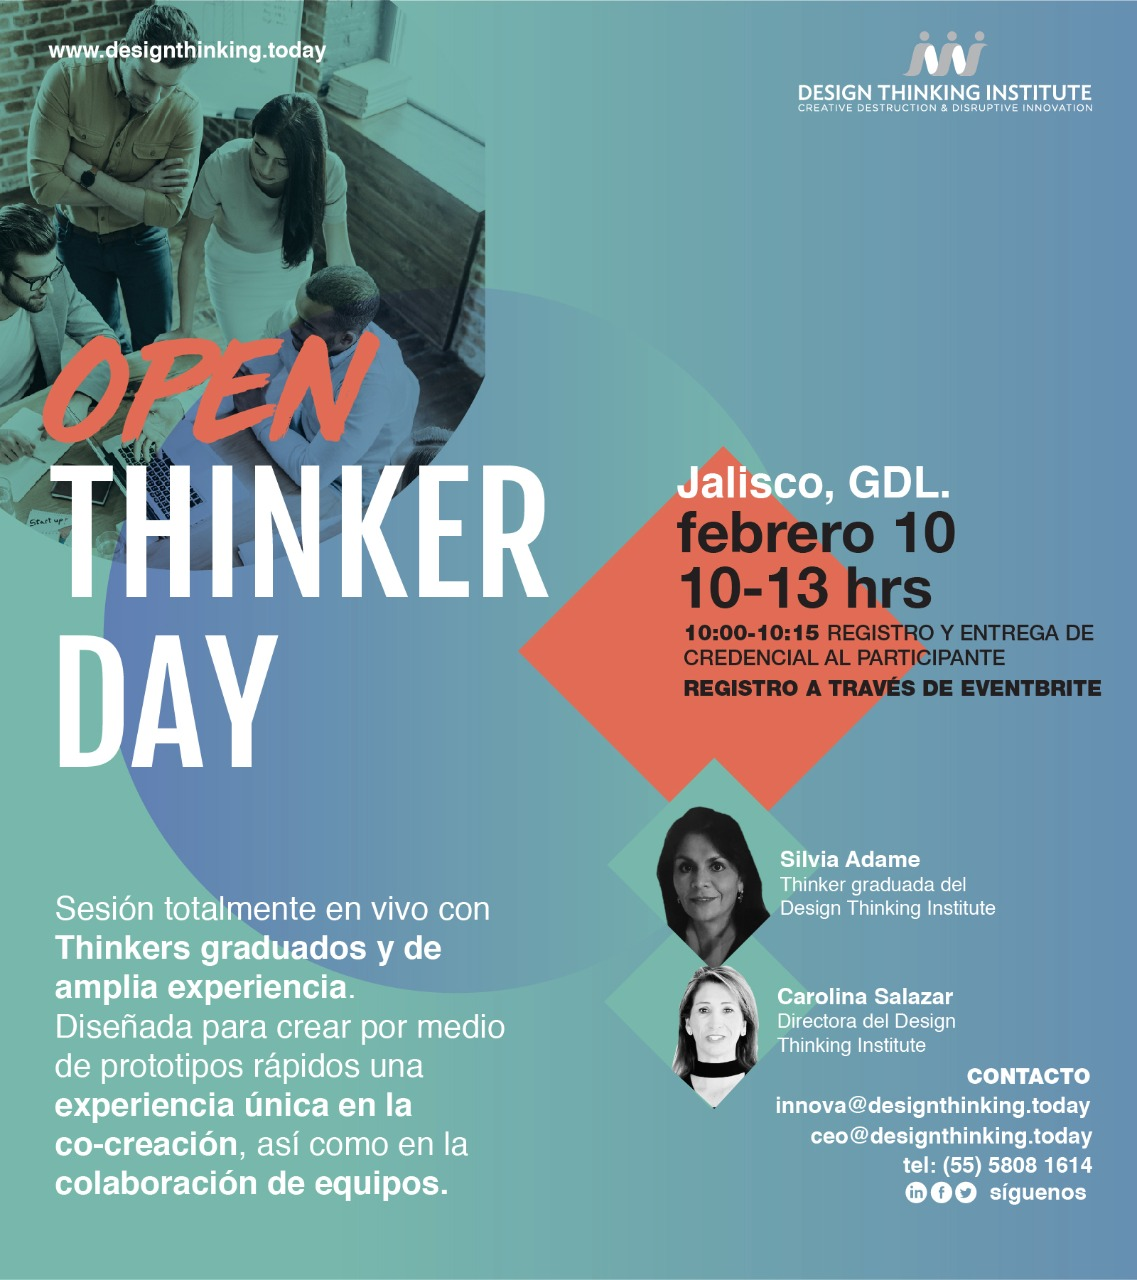 Open Thinker Day